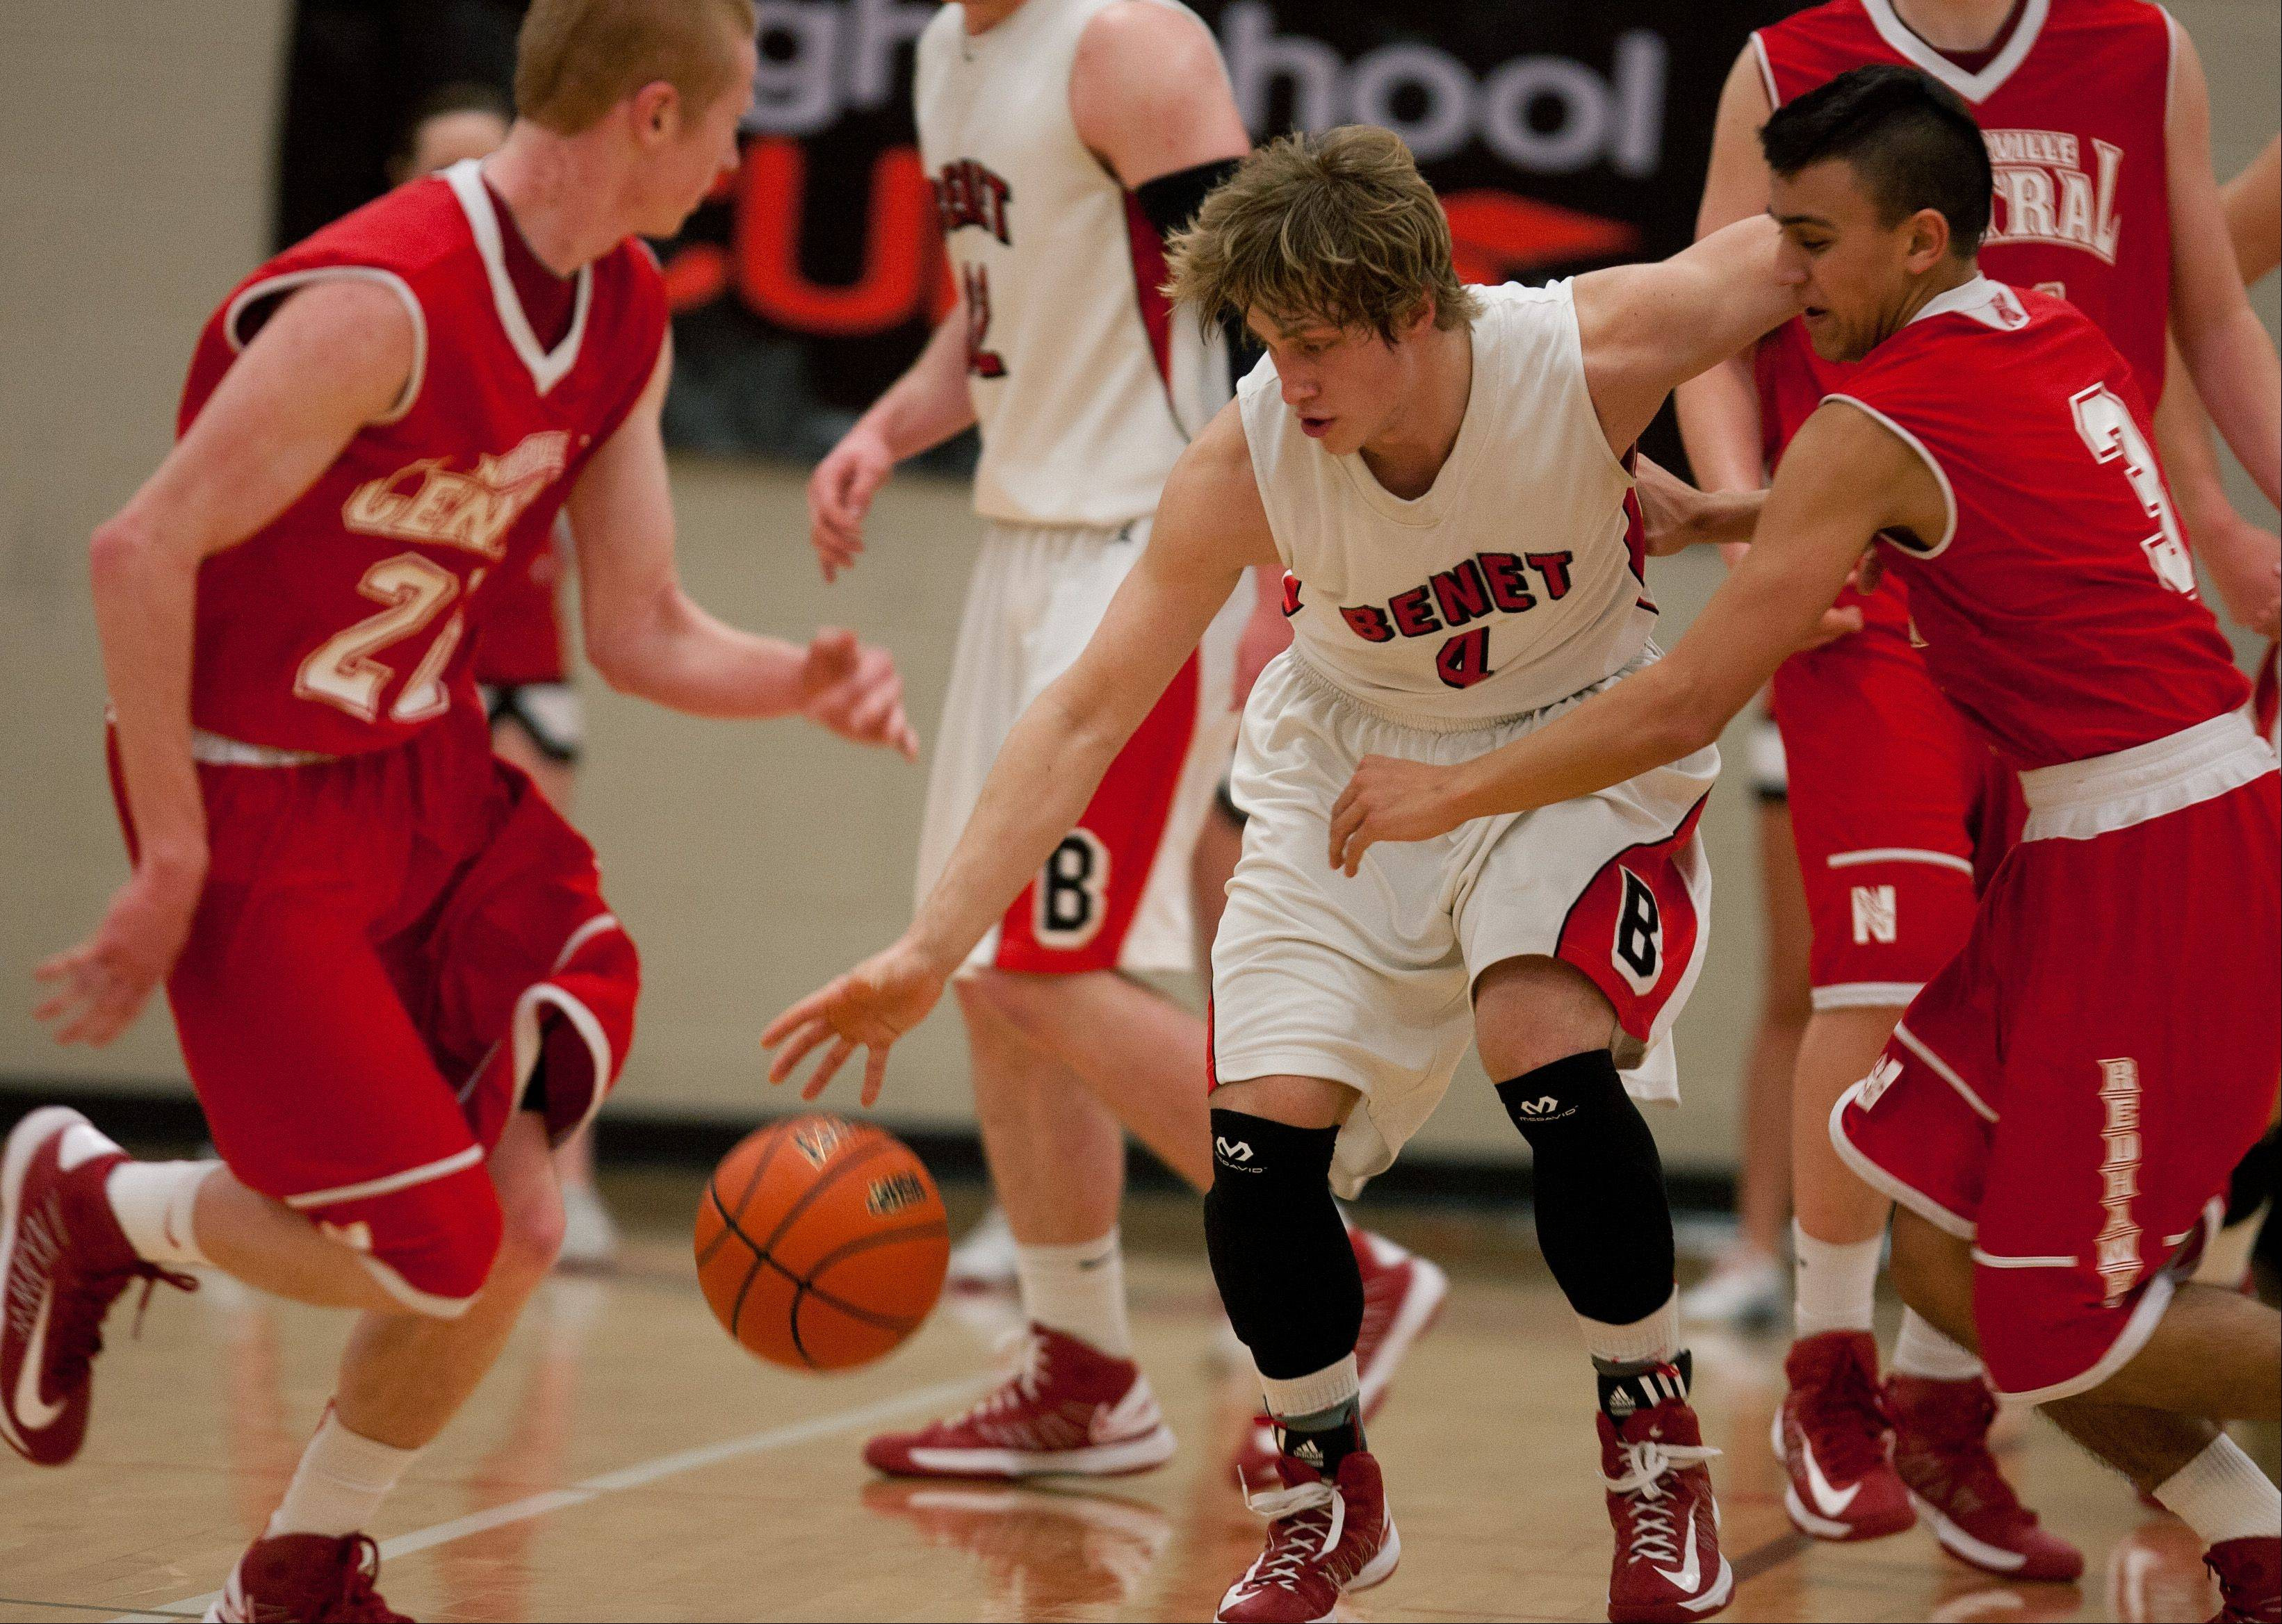 Benet's Eddie Eshoo dribbles past Naperville Central's Nicky Lopez, right, during regional action in Lisle.